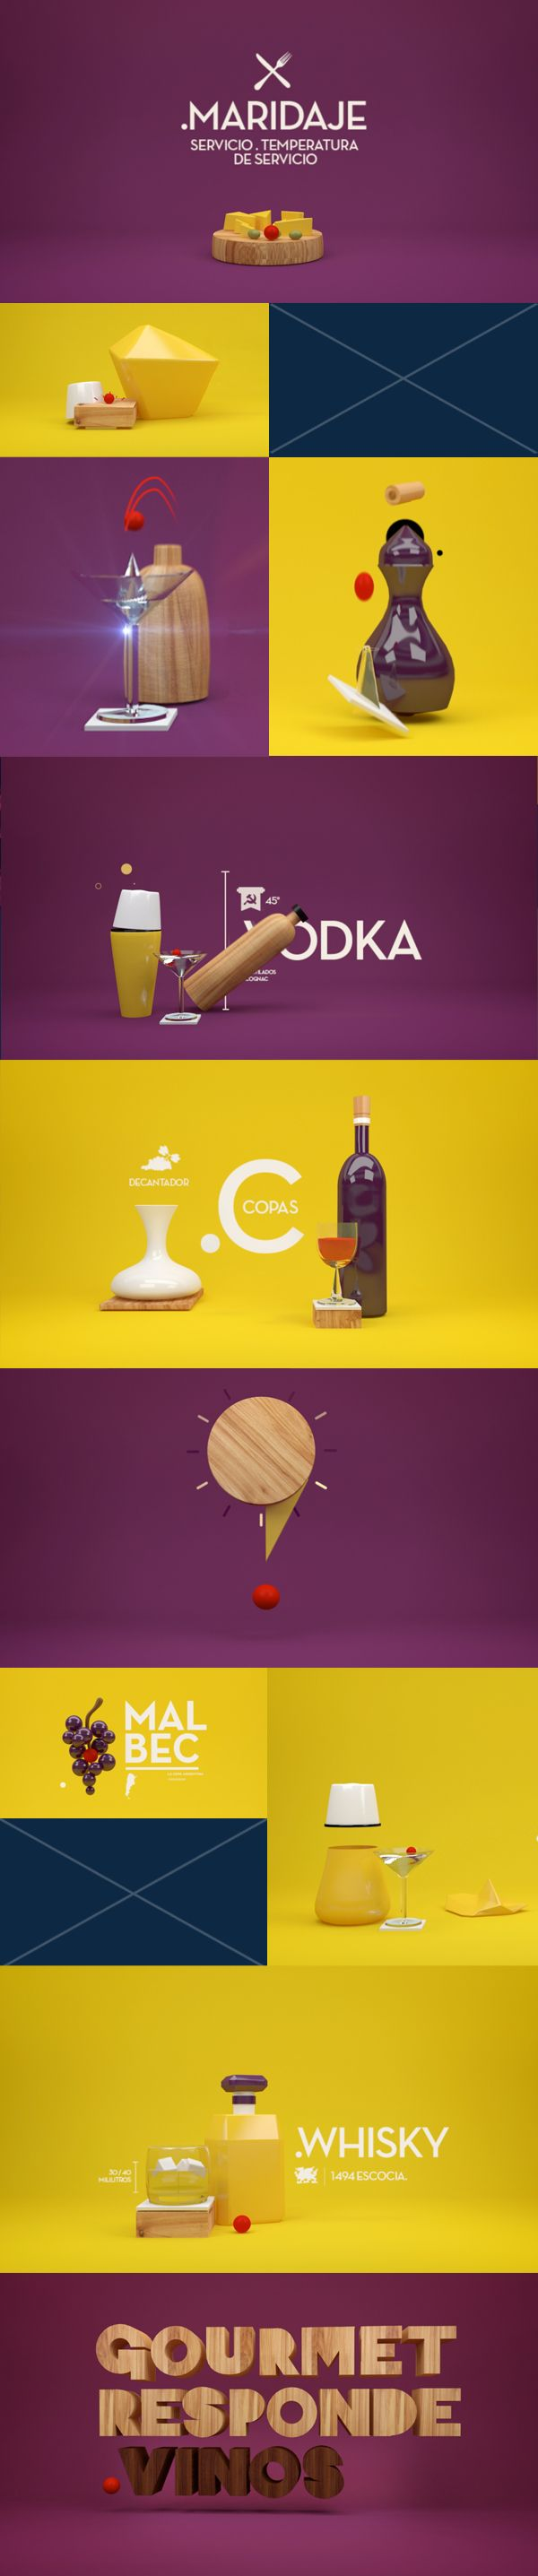 GOURMET RESPONDE. VINOS by InlandStudio ., via Behance